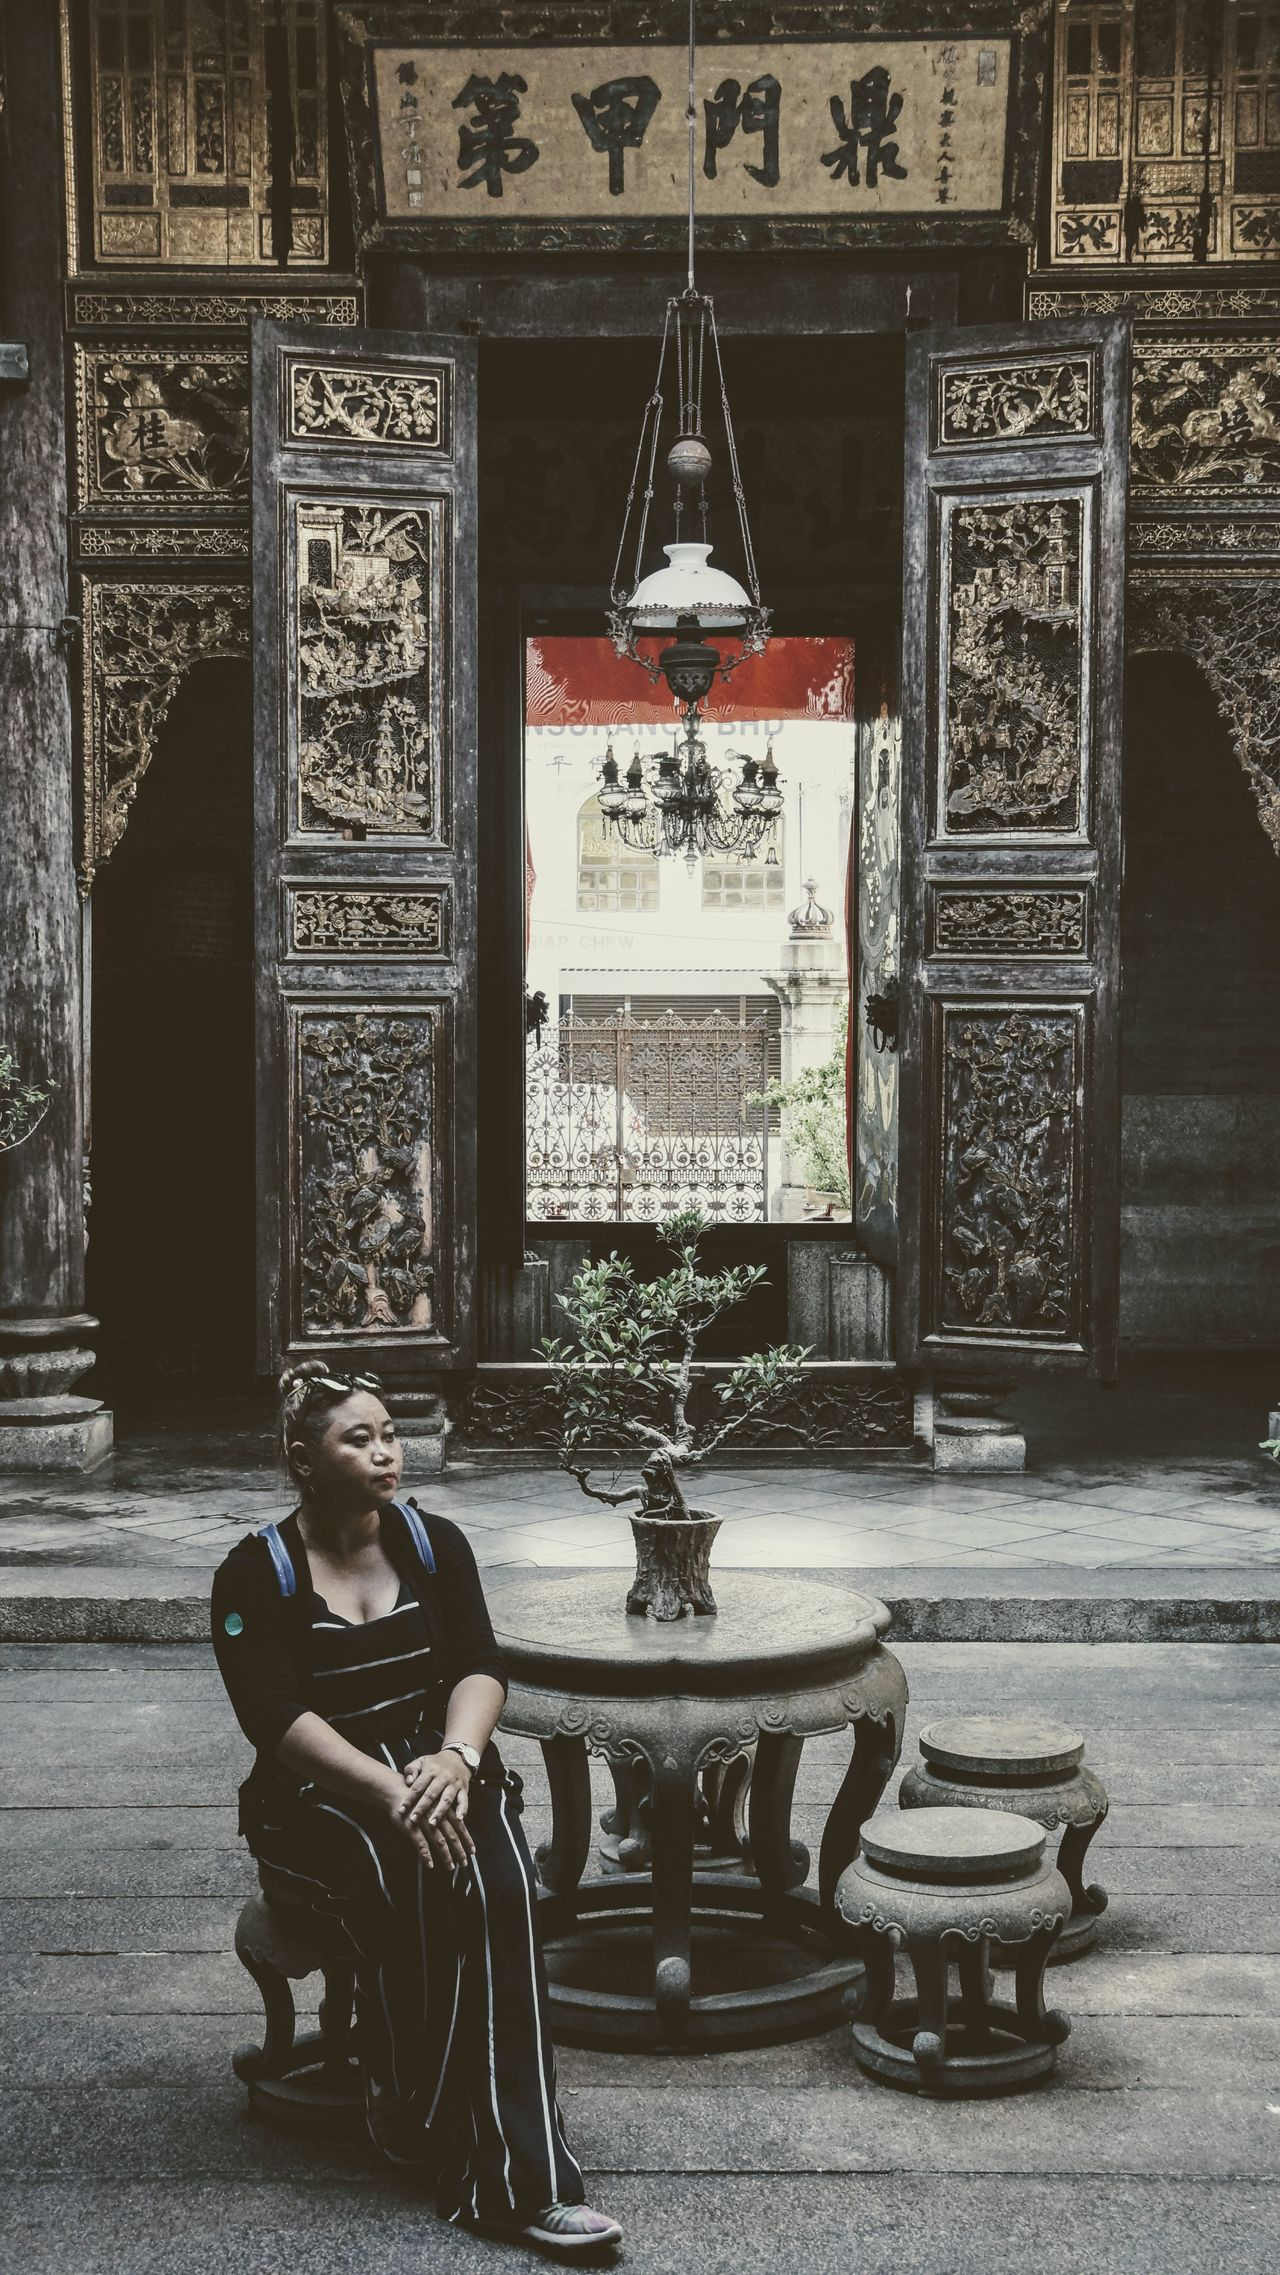 Sit tall and be confident Georgetown Penang Looking Away Penang Pinang Peranakan Mansion Architecture Building Exterior Built Structure Day Front View Full Length Indoors  Indoors  Lifestyles Malaysia One Person People Place Of Worship Real People Religion Sitting Solo Spirituality Statue Young Adult Young Women